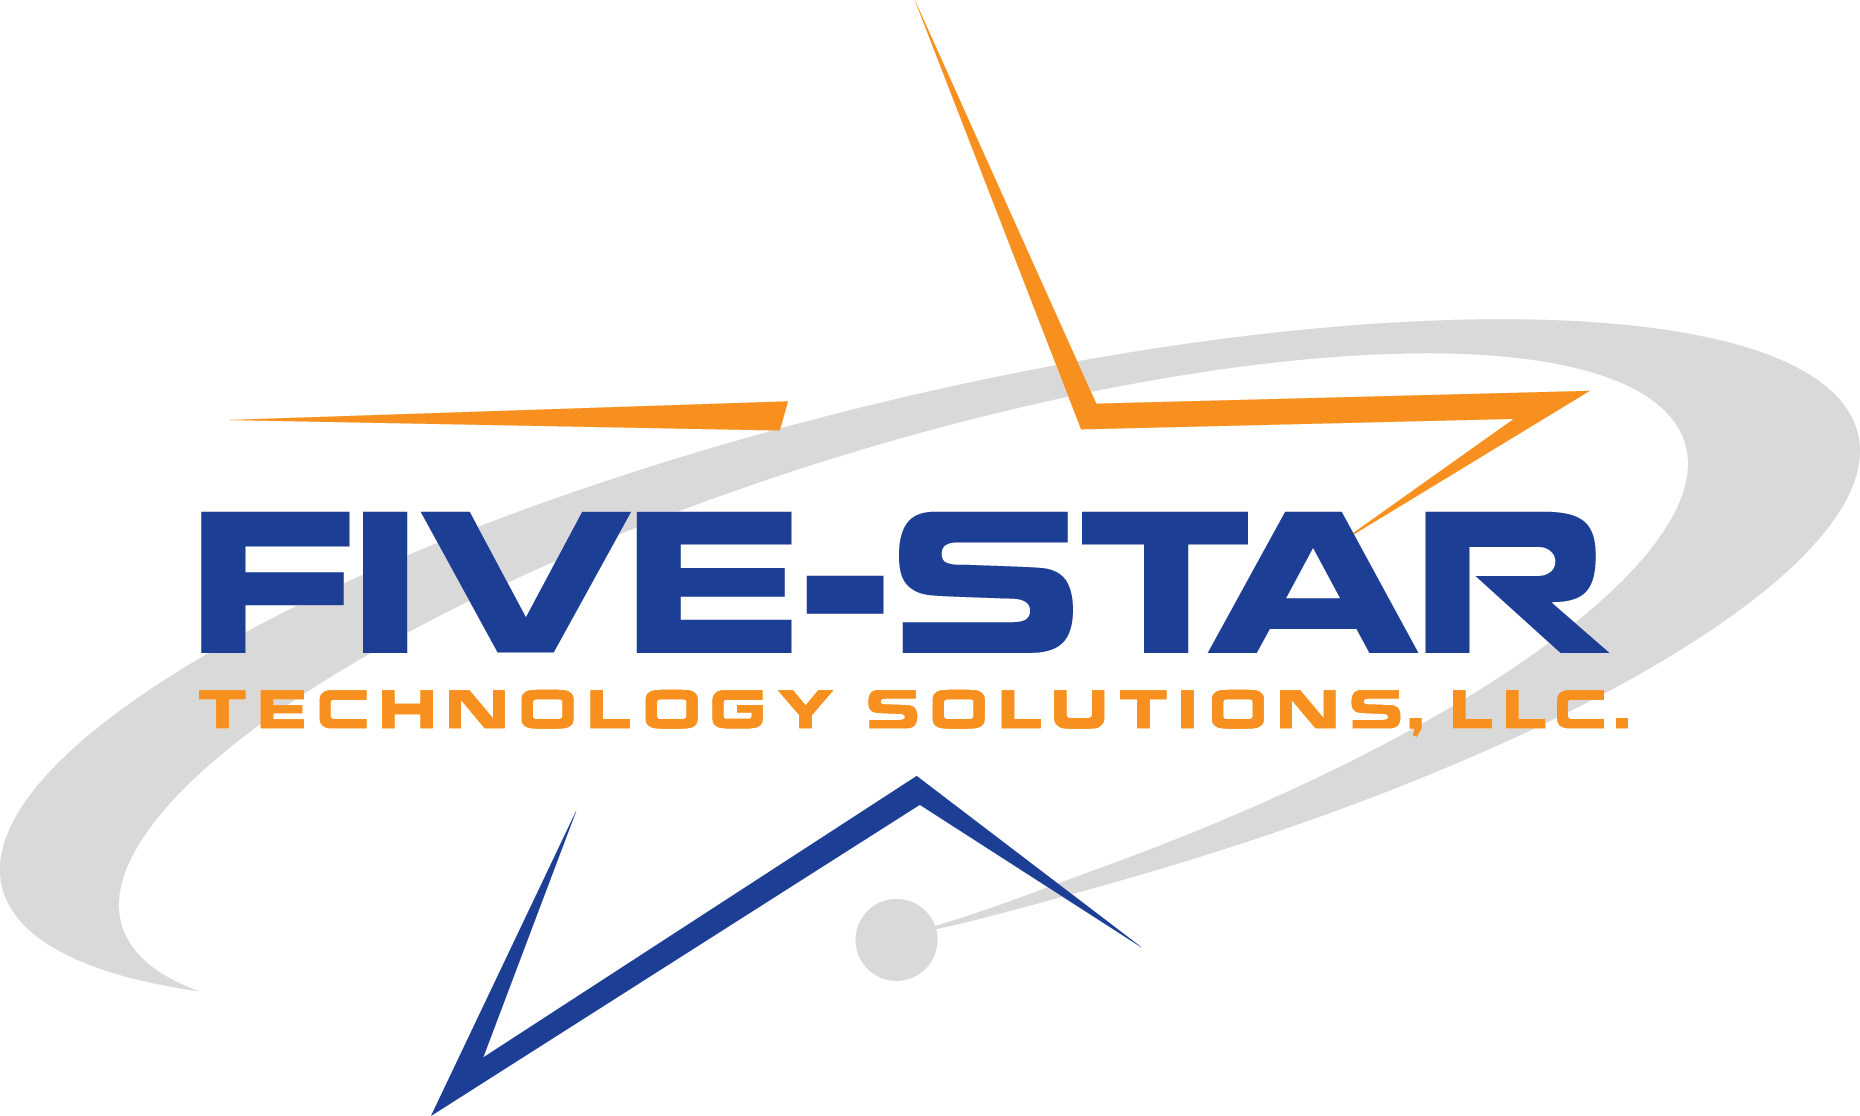 Five Star Technology Solutions